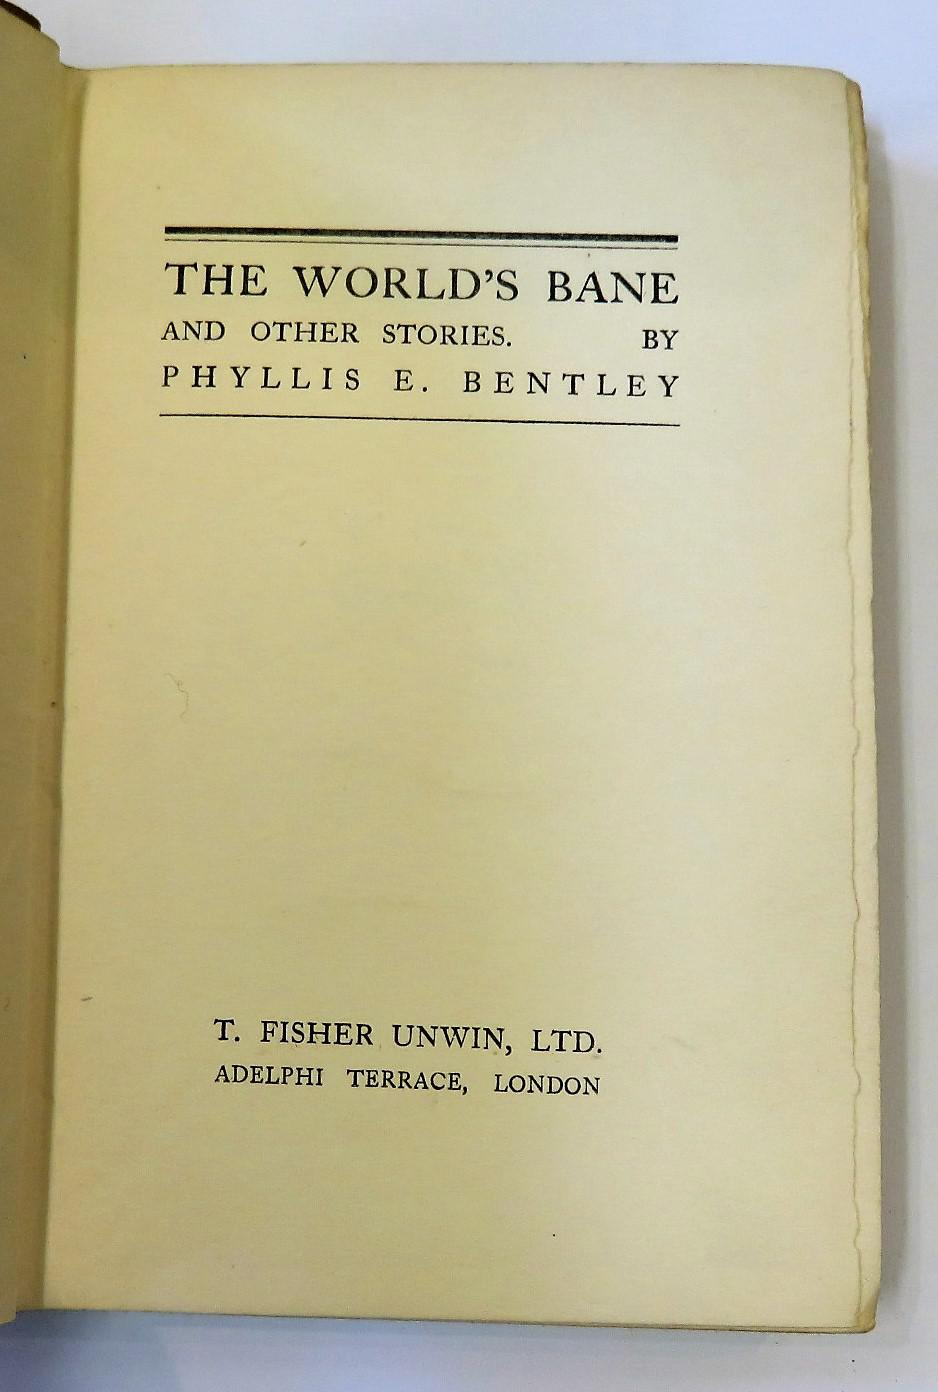 The World's Bane and Other Stories